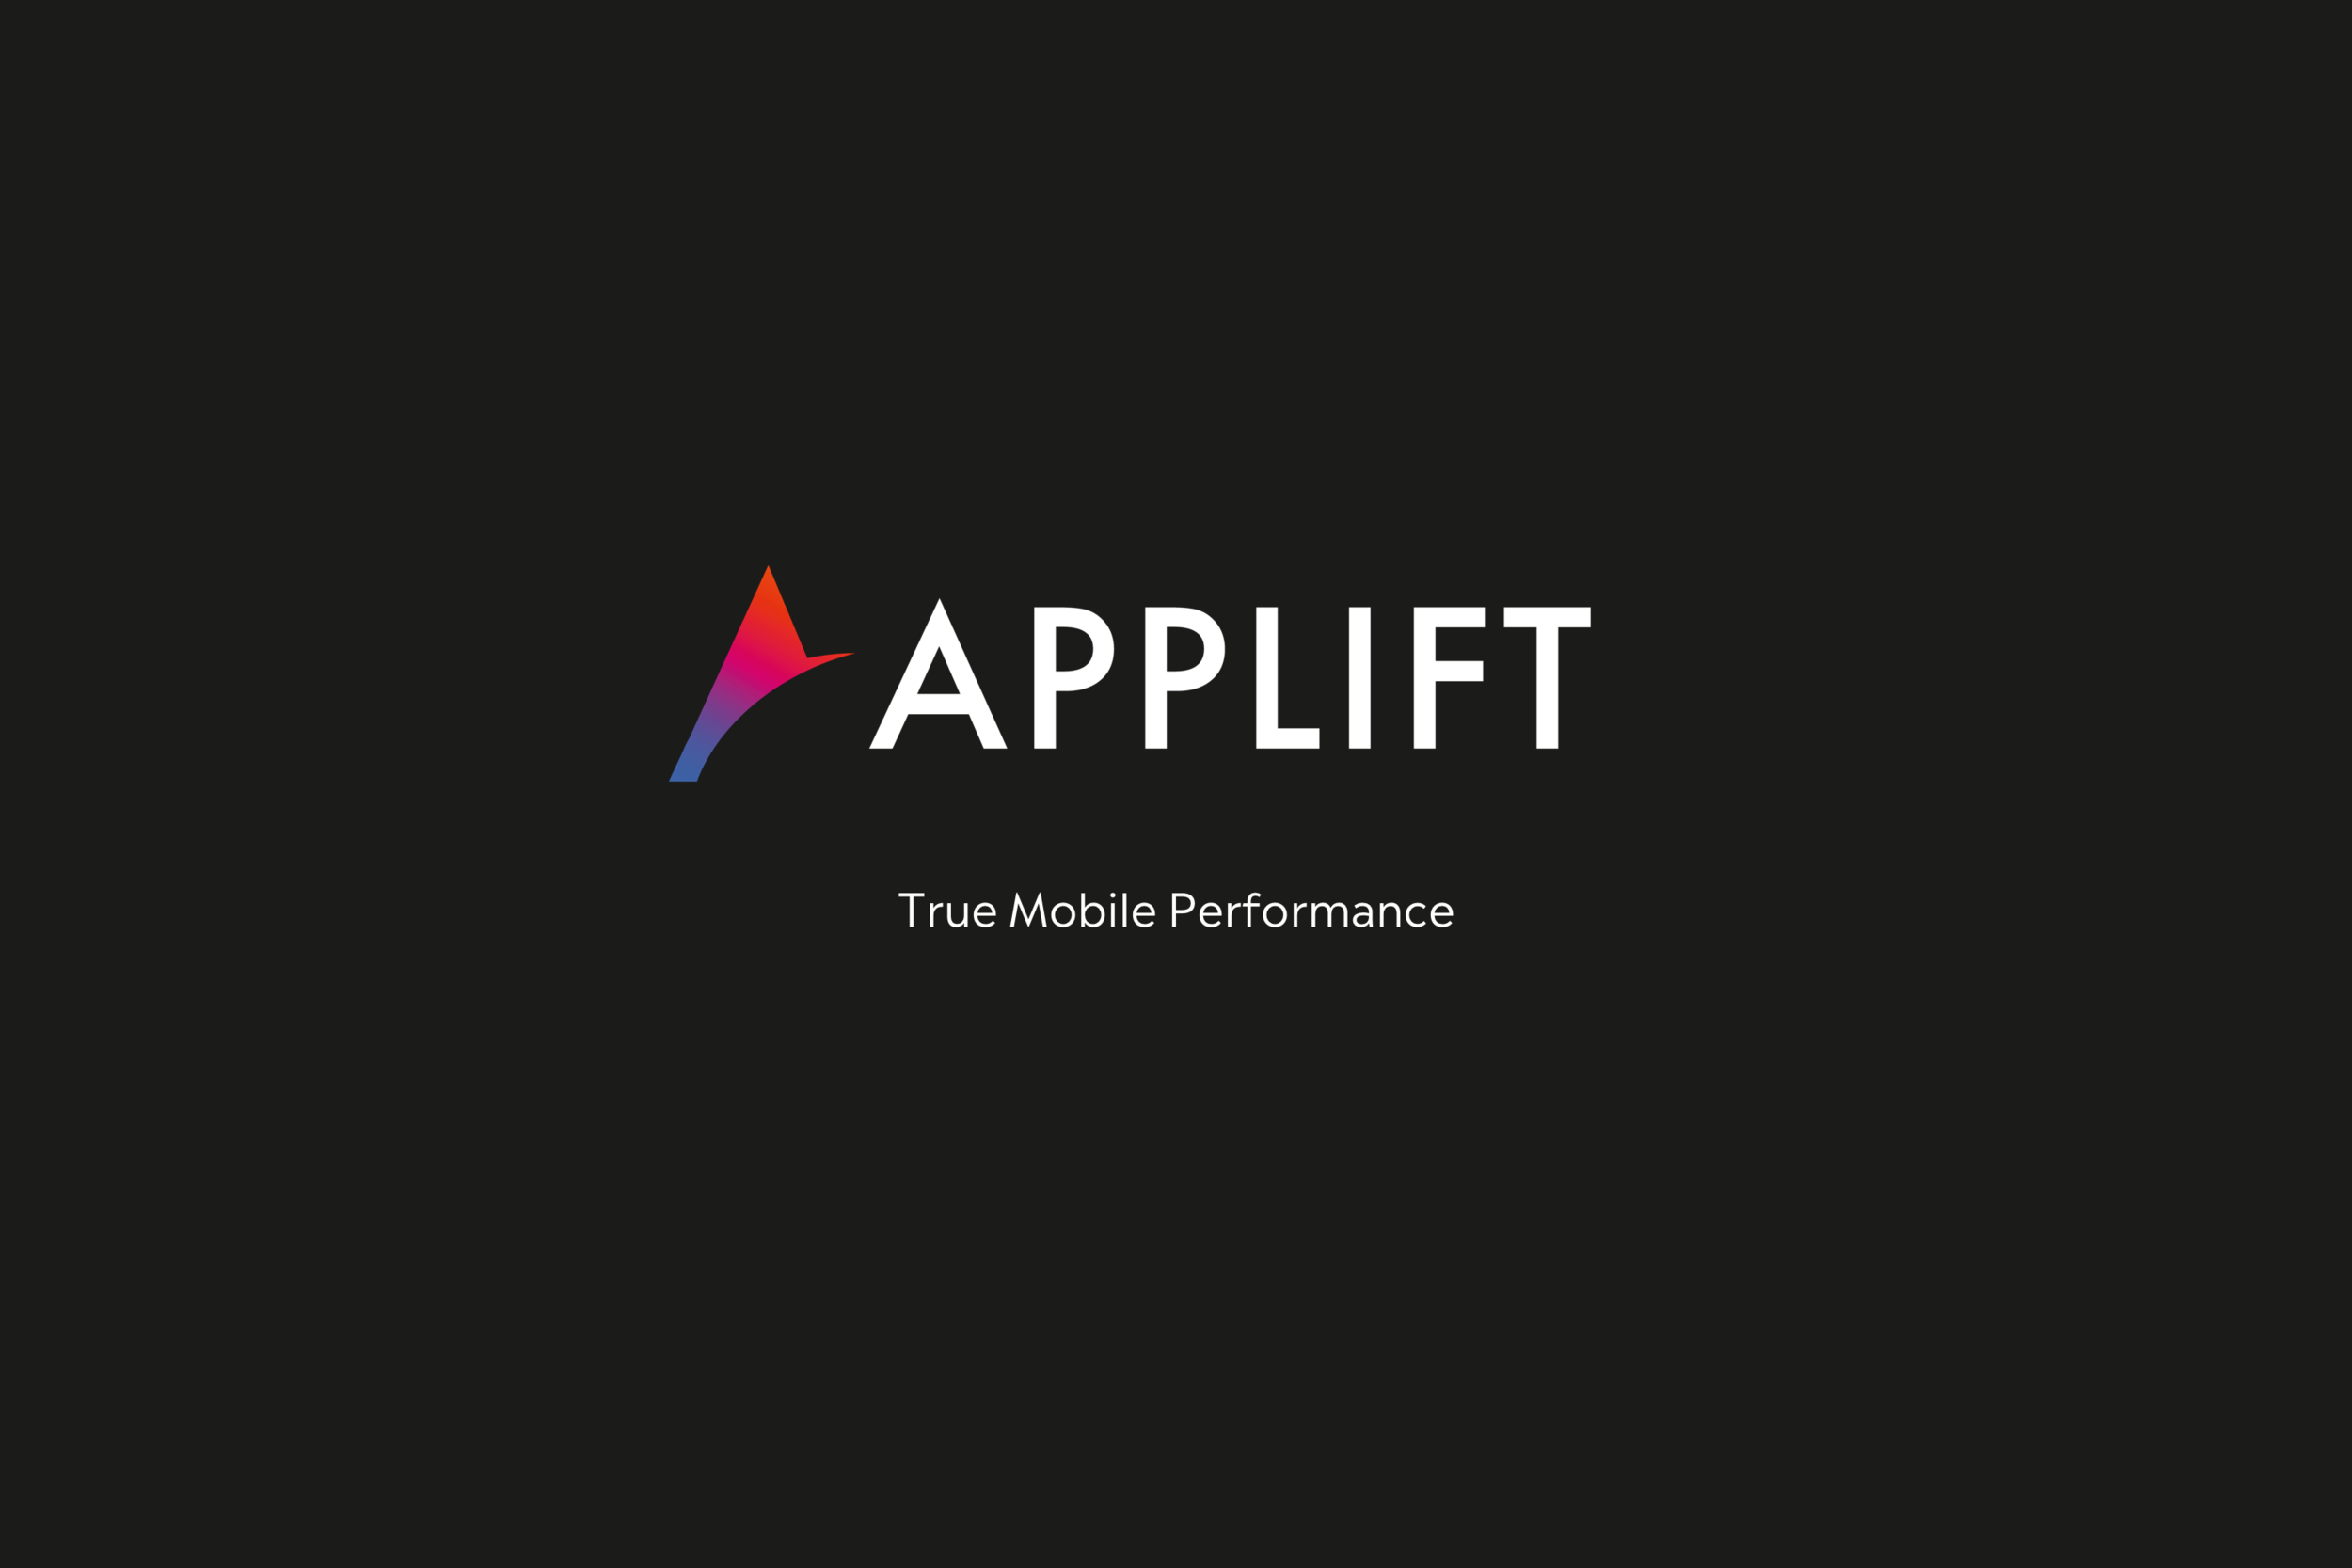 applift · true mobile performance.png